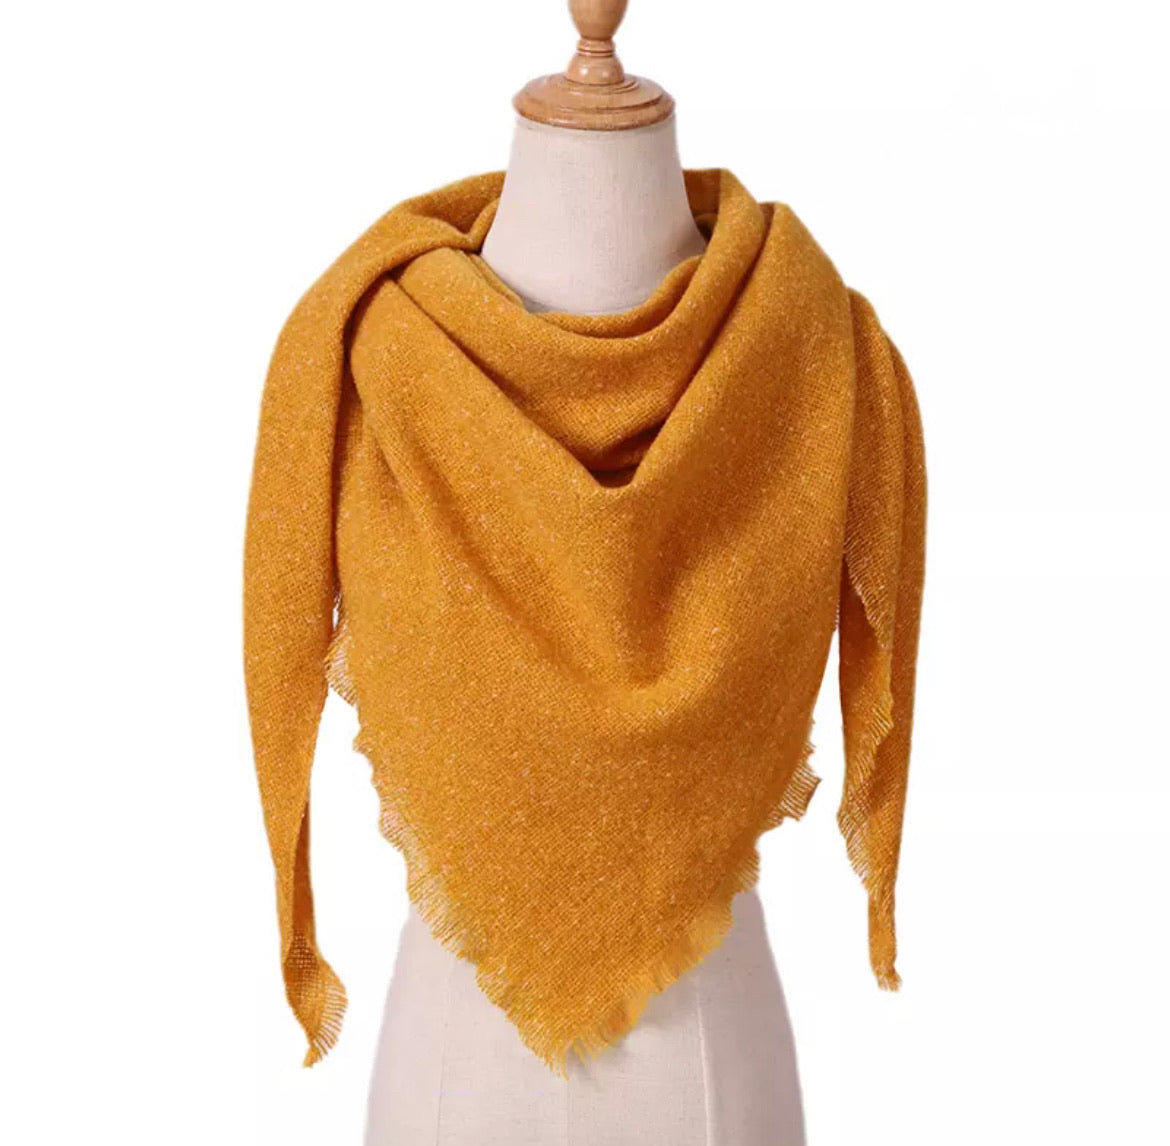 Heathered Mustard Triangle Blanket Scarf